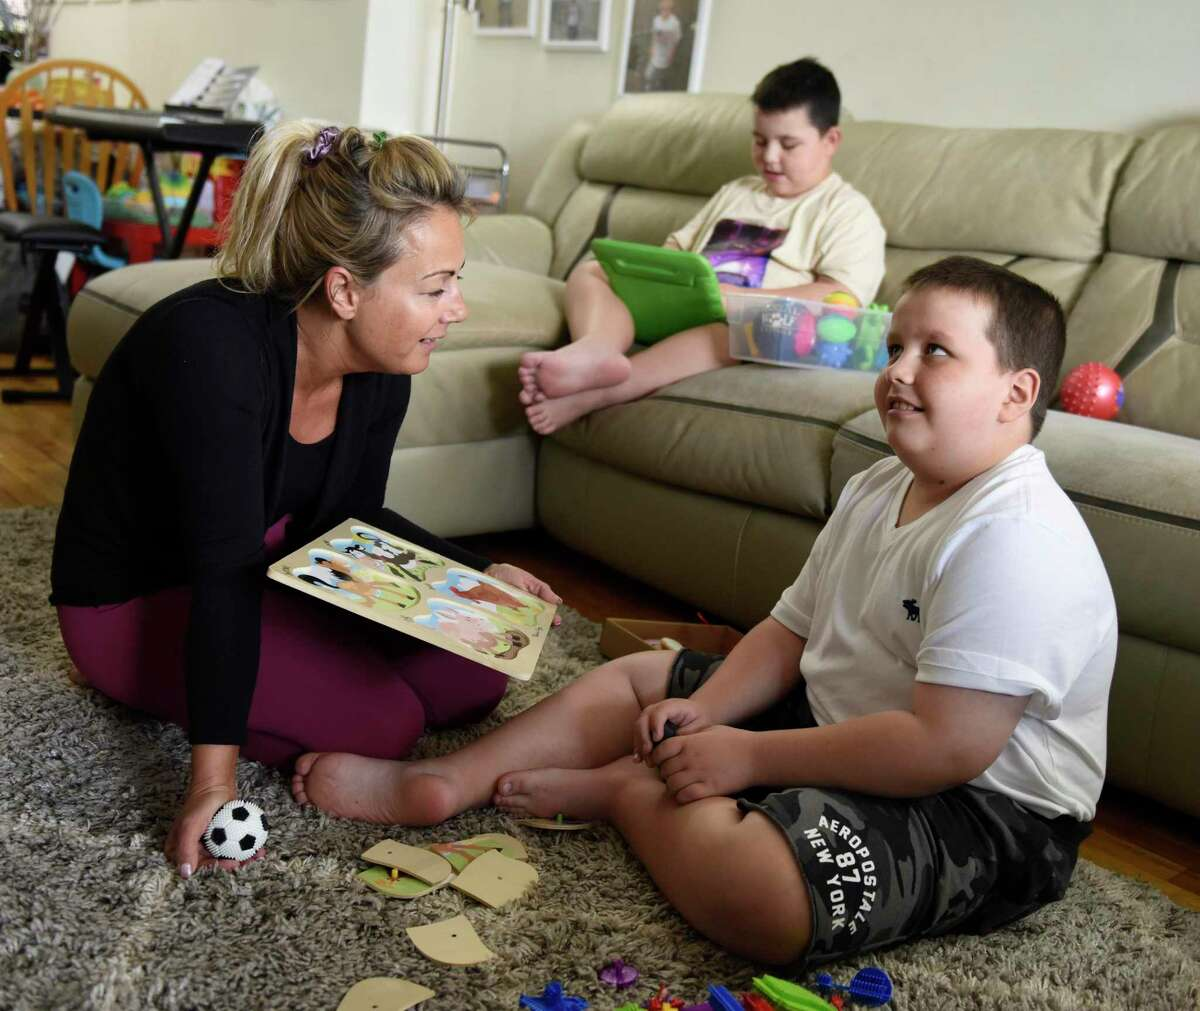 Timea Zadori cares for her two children, Noah, center, 9, and Noel, right, 10, at her apartment in Greenwich, Conn. Wednesday, April 21, 2021. Zadori quit her job during the pandemic to care for her two nonverbal sons on the autism spectrum that require constant attention and assistance.